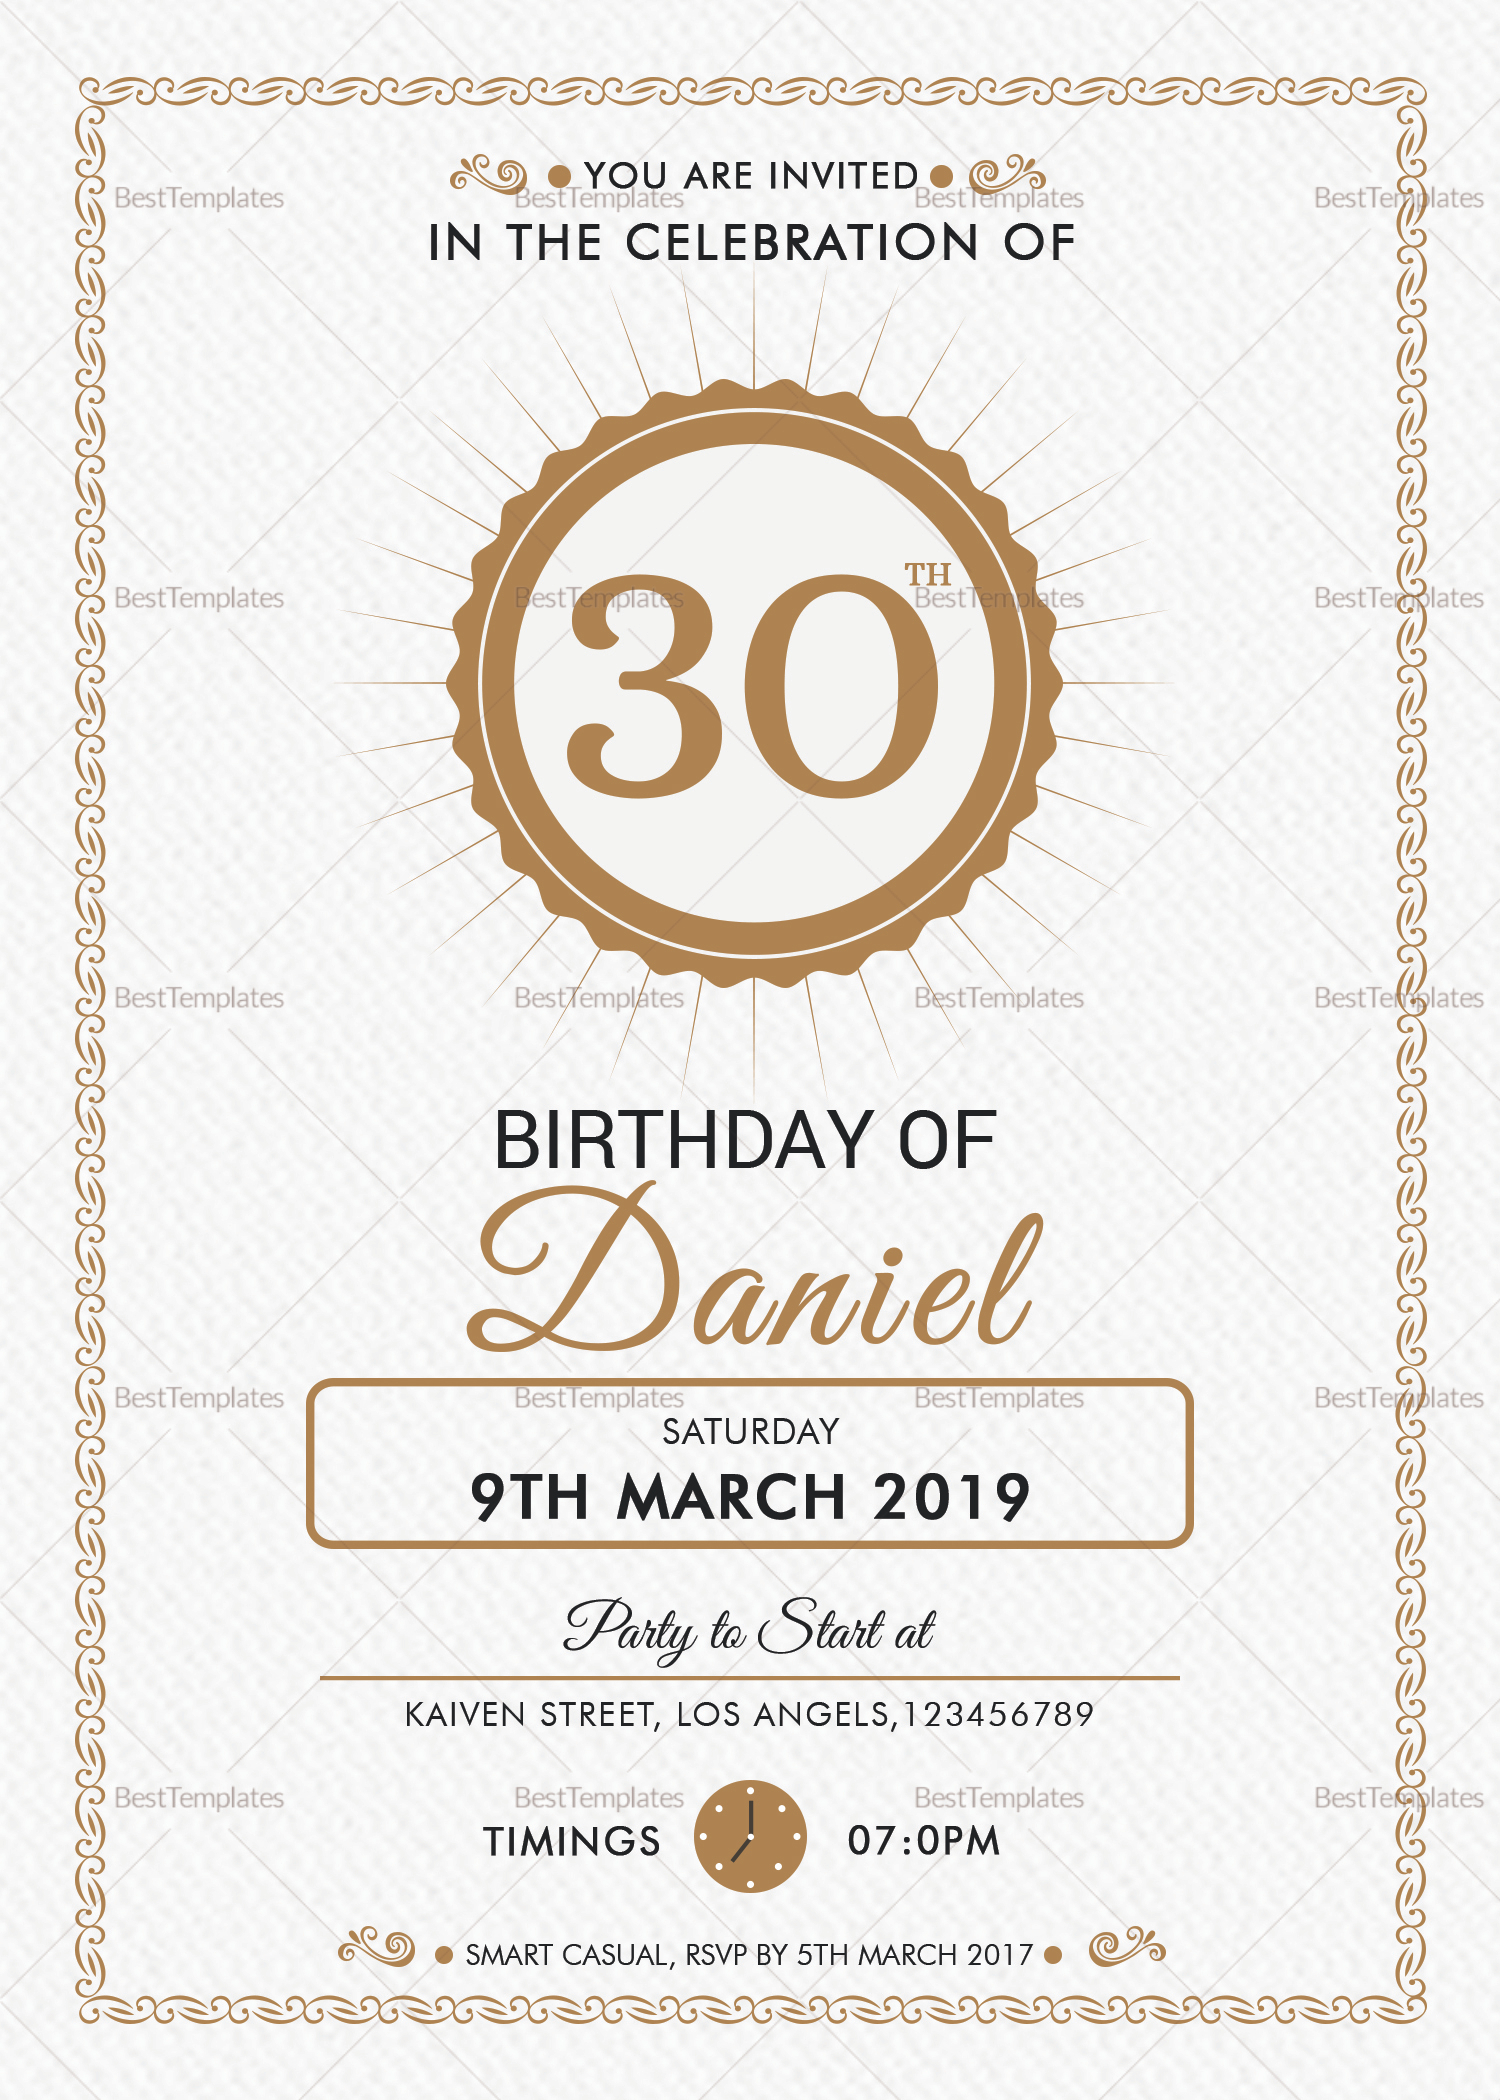 Adult Birthday Party Invitation Design Template